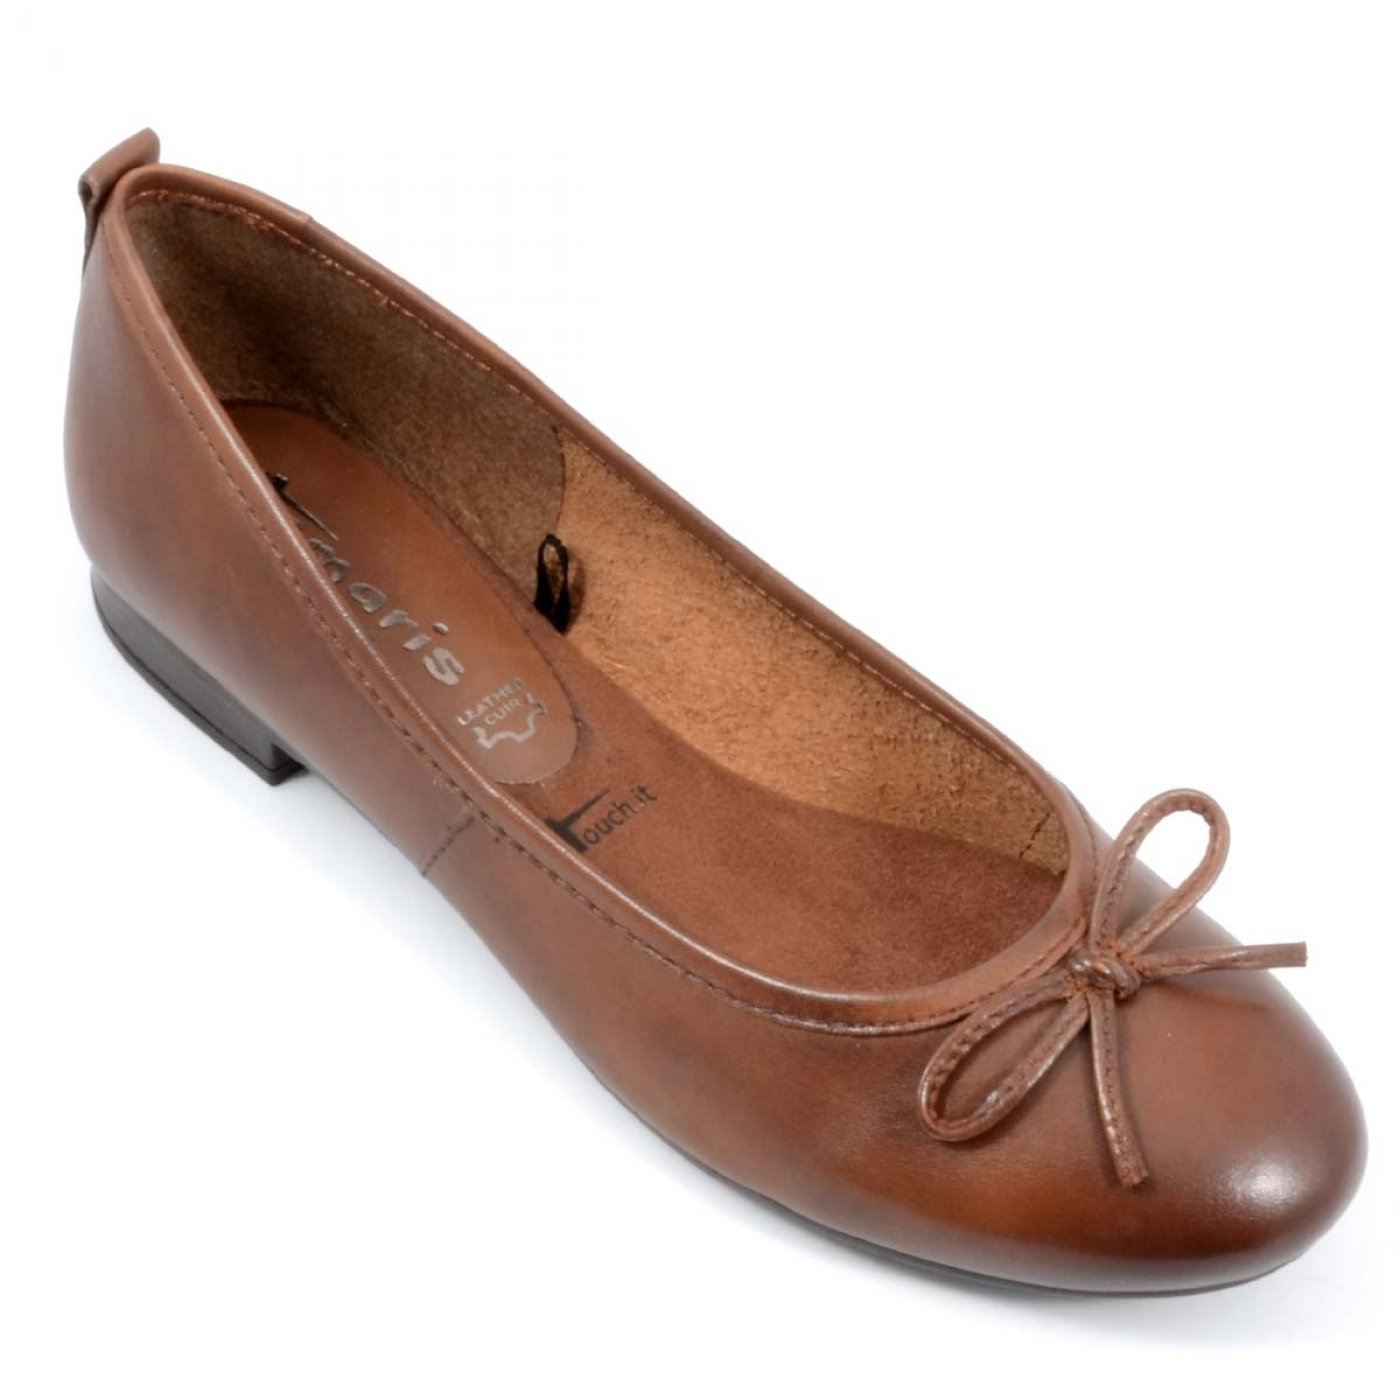 ... Buy Online Flats / Bellies - Classy Brown Leather Low Heel Women  Ballerinas | Tamaris Germany ...